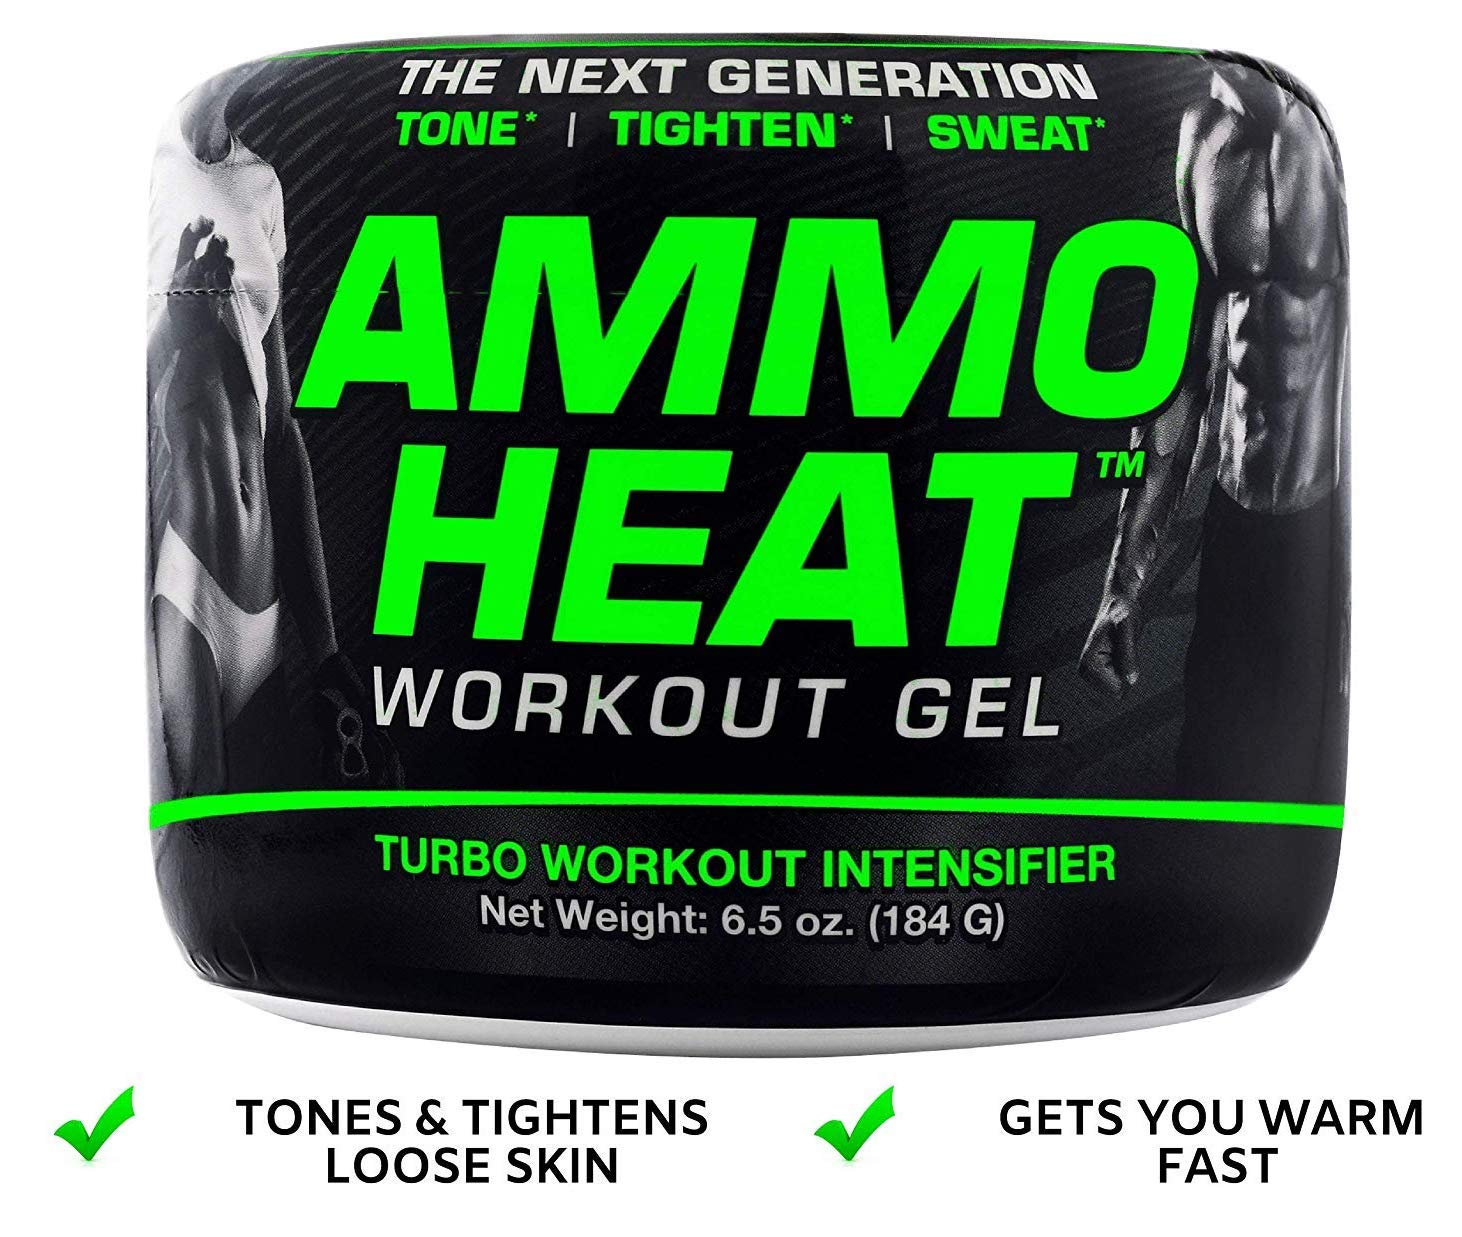 AMMOHEAT 6.5 oz. Thermogenic Fat Melter and Skin Tightening Topical Gel Sweat Intensifier – Tone, Tighten, and Sweat Made with ShapePerfection and Collagen